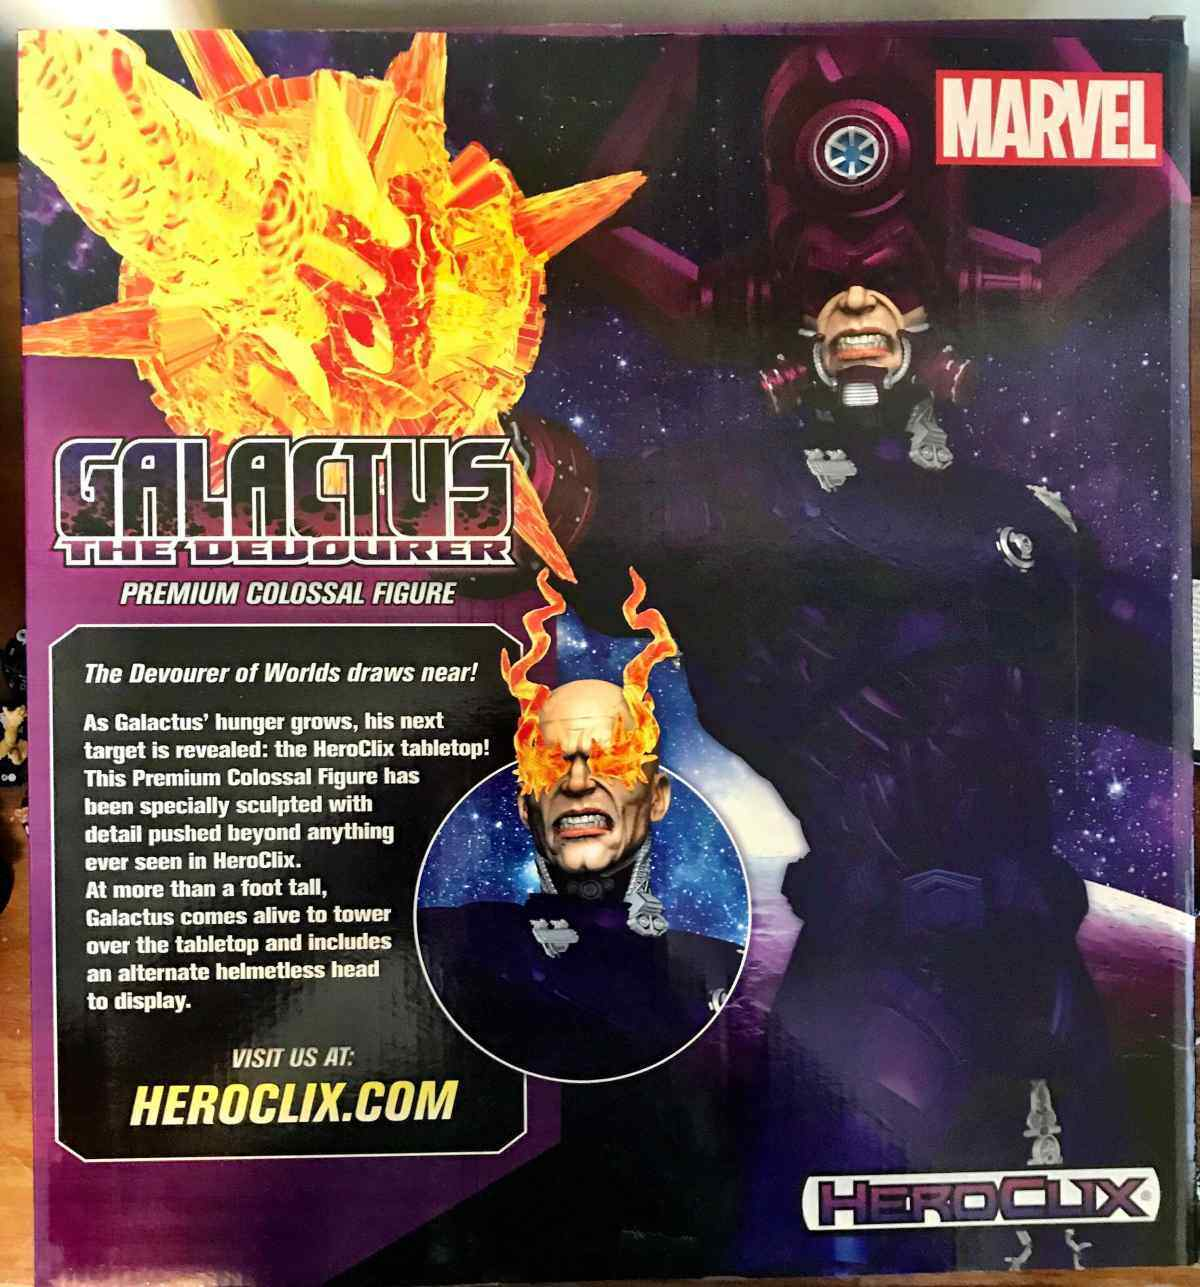 Marvel Heroclix Galactus - Devourer of Worlds Premium Colossal Figure 001